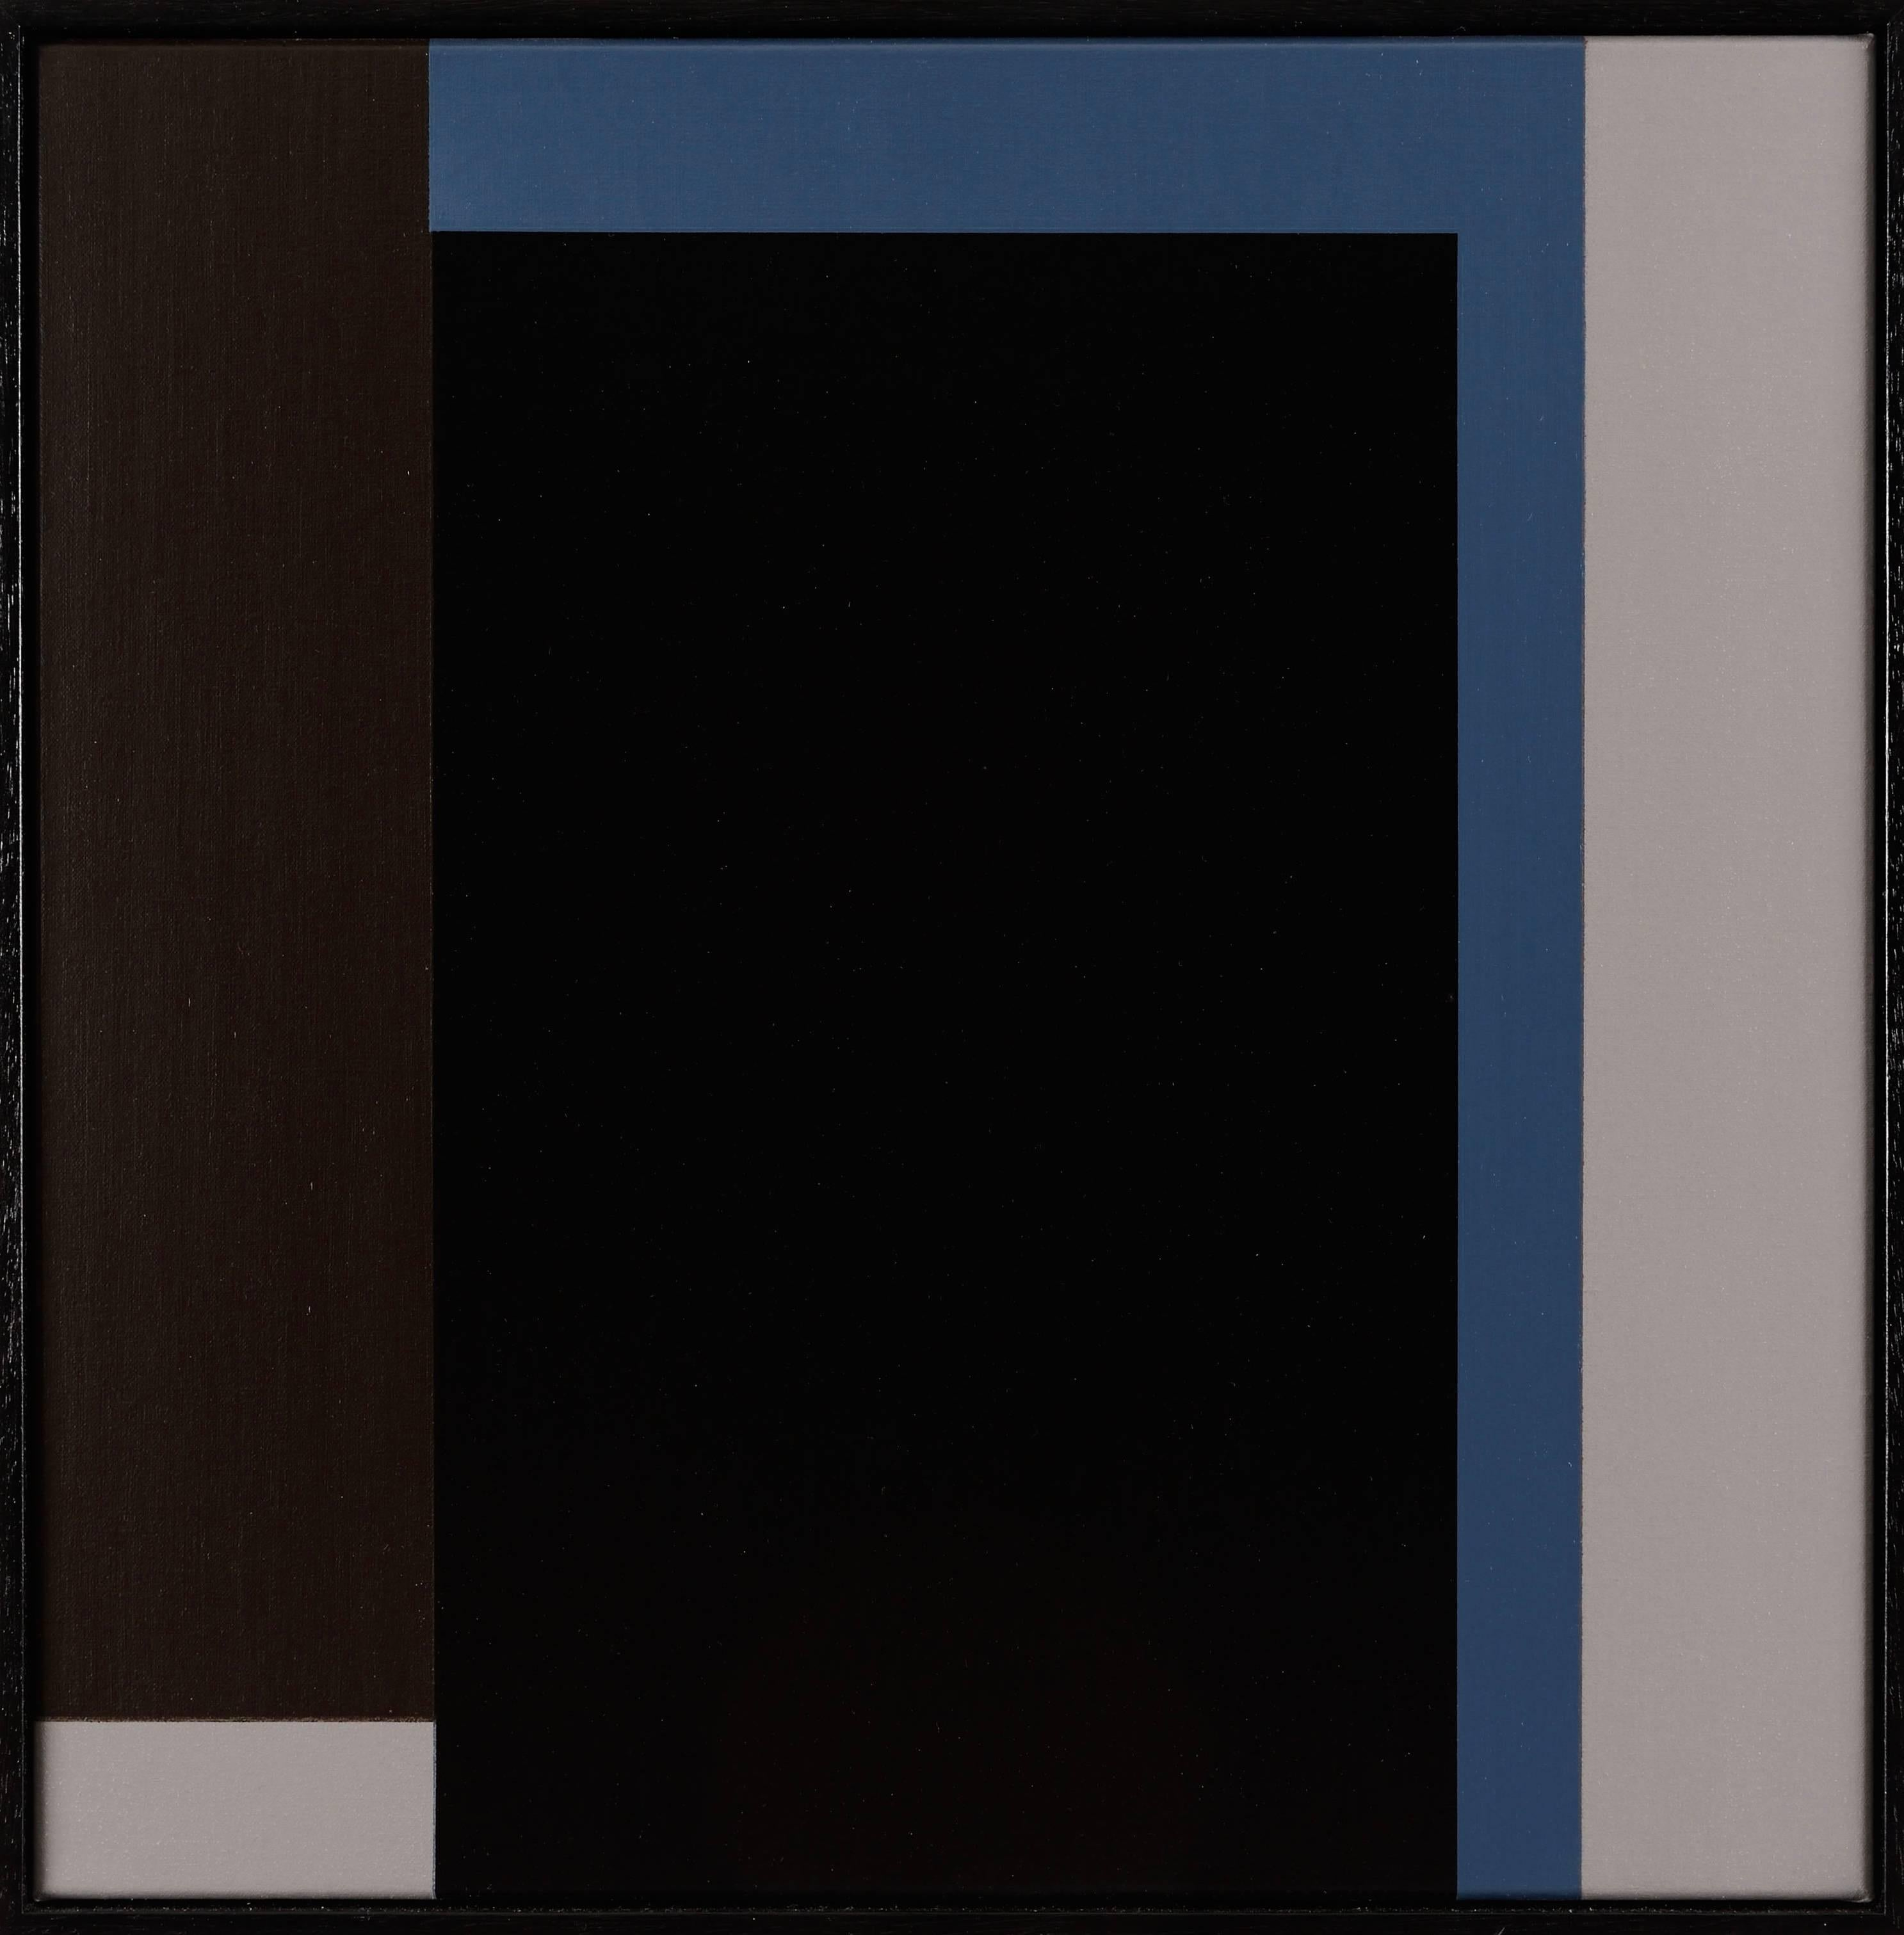 Painting No. 1, 2005-2006